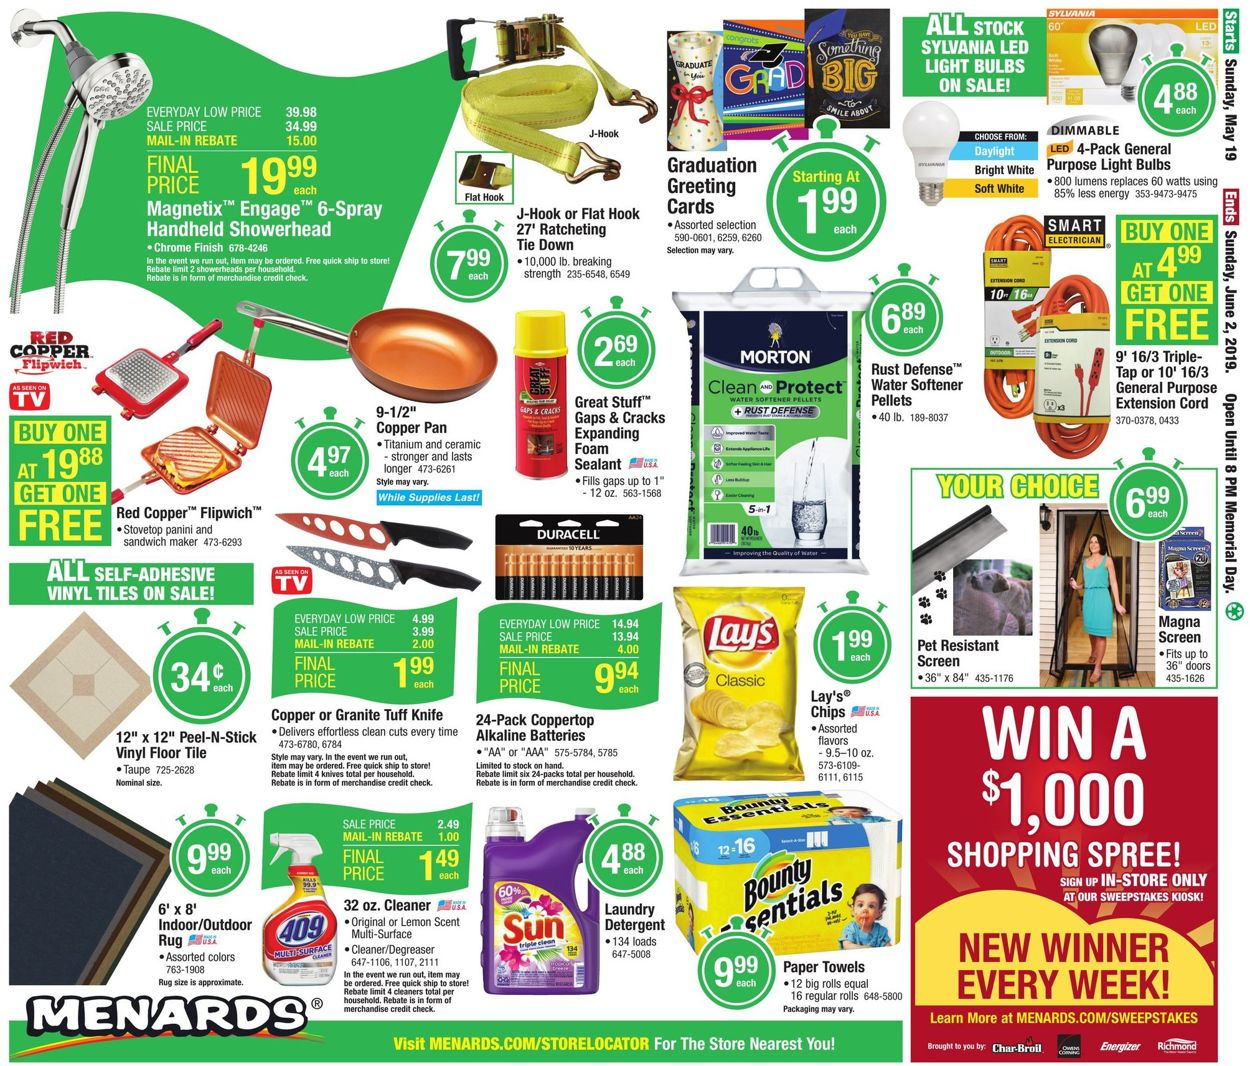 Menards Current weekly ad 05/19 - 06/02/2019 [45] - frequent